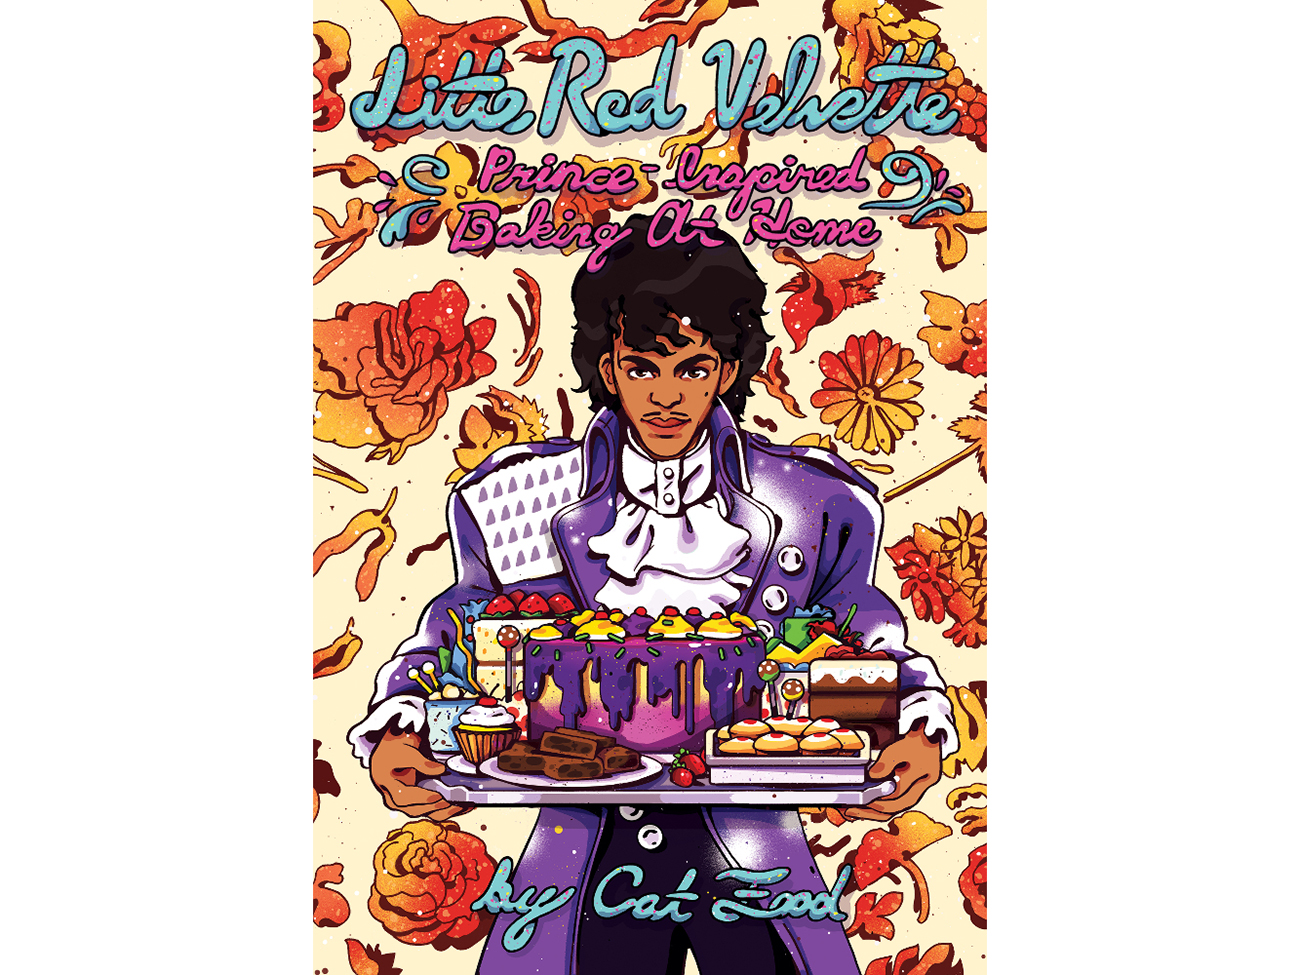 belly kids prince inspired cookbook little red velvette cover